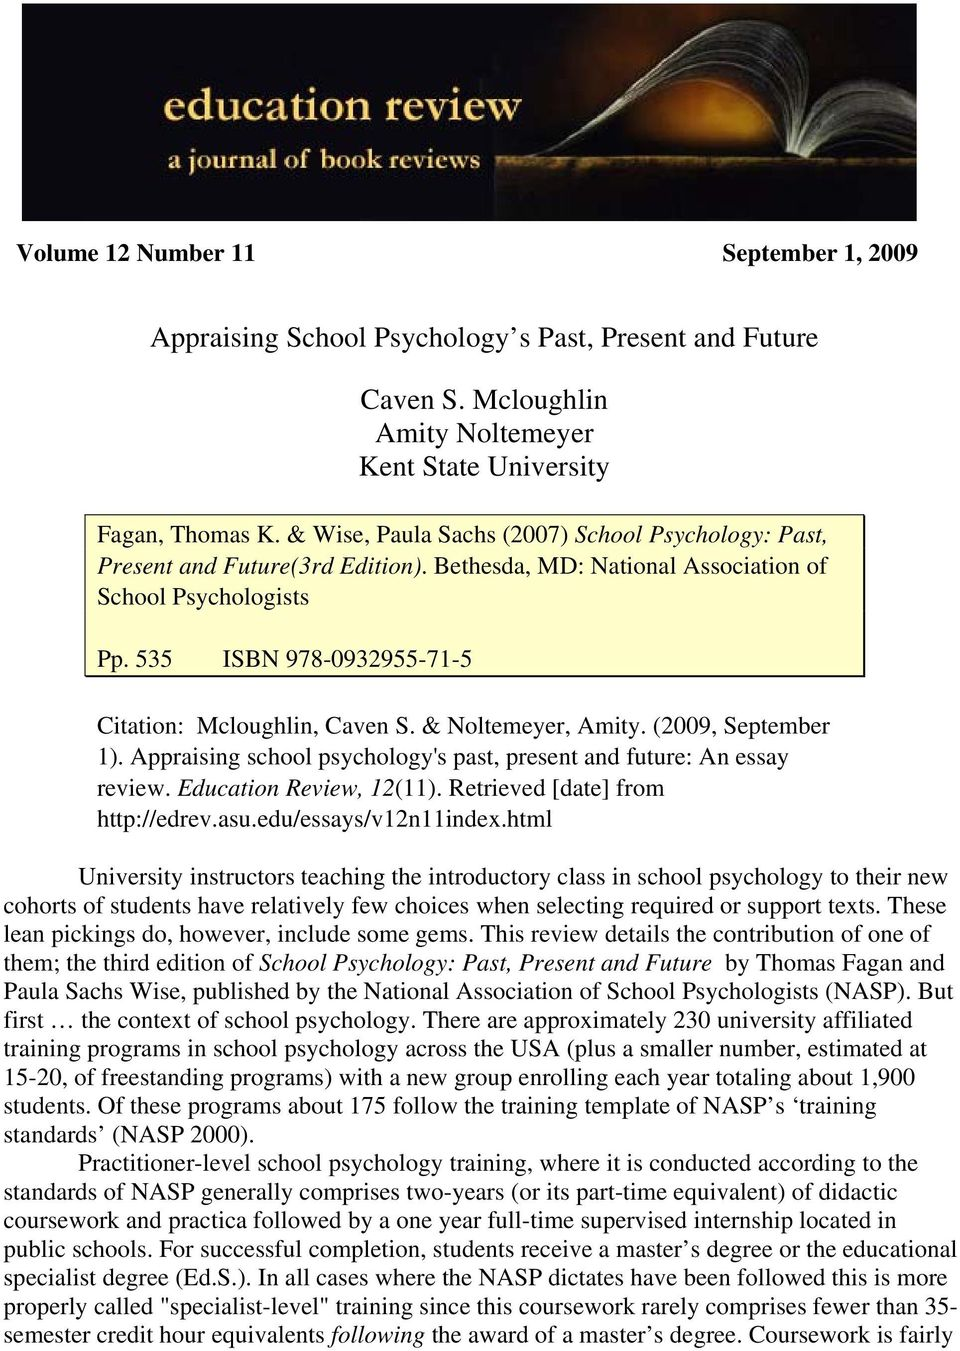 535 ISBN 978-0932955-71-5 Citation: Mcloughlin, Caven S. & Noltemeyer, Amity. (2009, September 1). Appraising school psychology's past, present and future: An essay review. Education Review, 12(11).